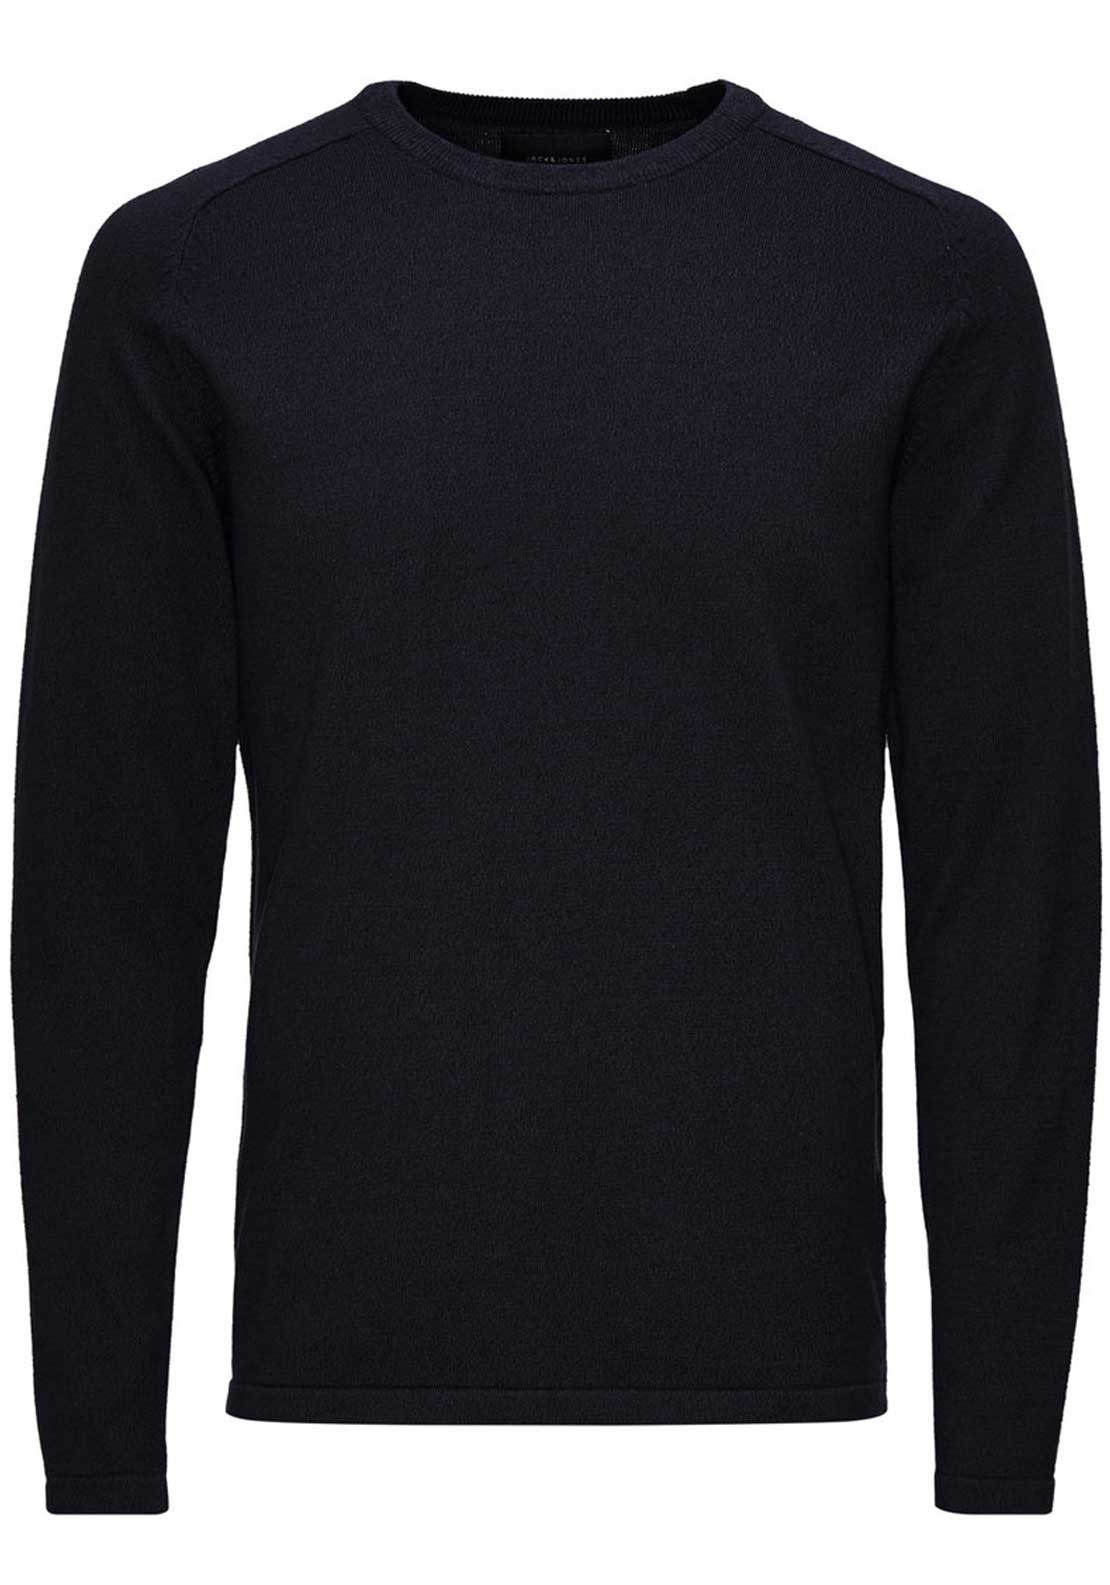 Jack & Jones Simple Fine Knit Cotton Jumper